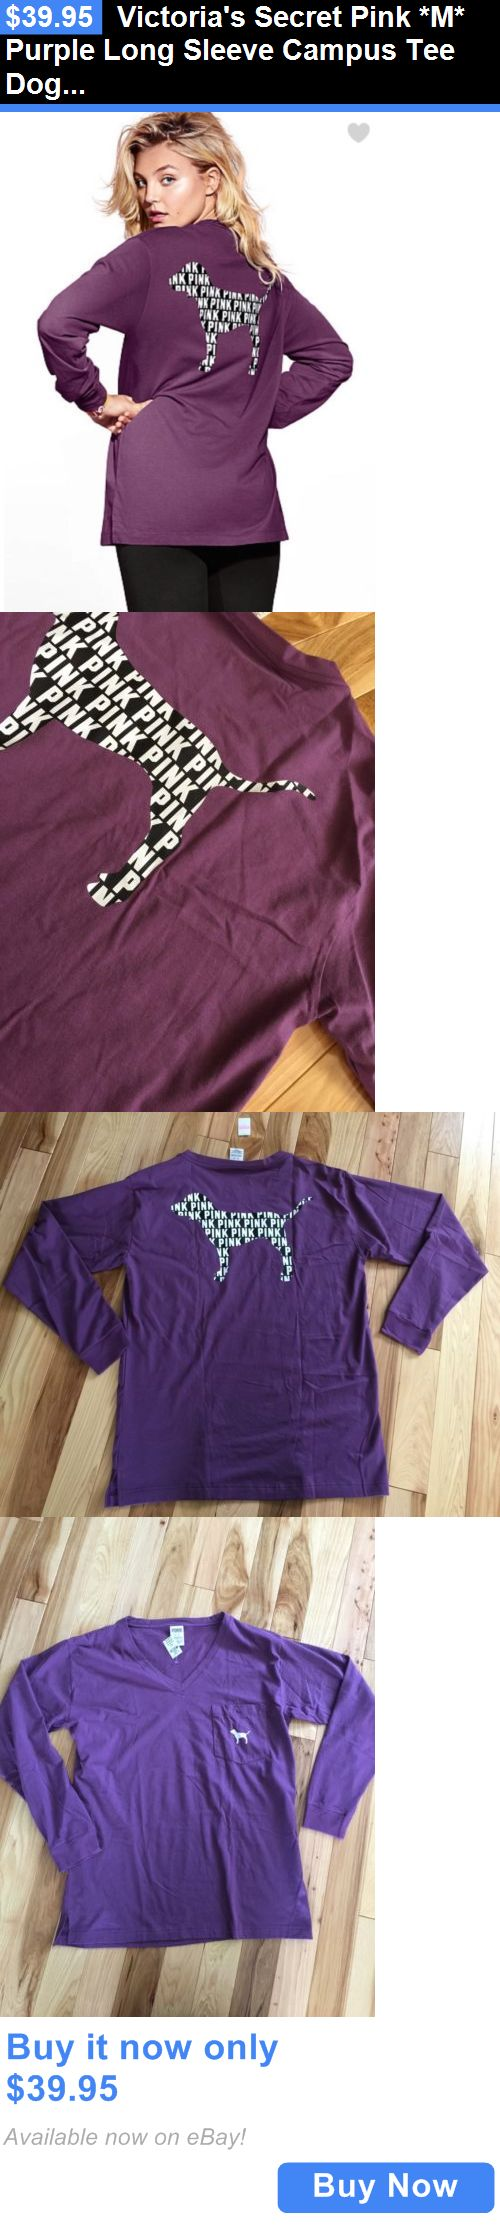 Women T Shirts: Victorias Secret Pink *M* Purple Long Sleeve Campus Tee Dog Logo BUY IT NOW ONLY: $39.95